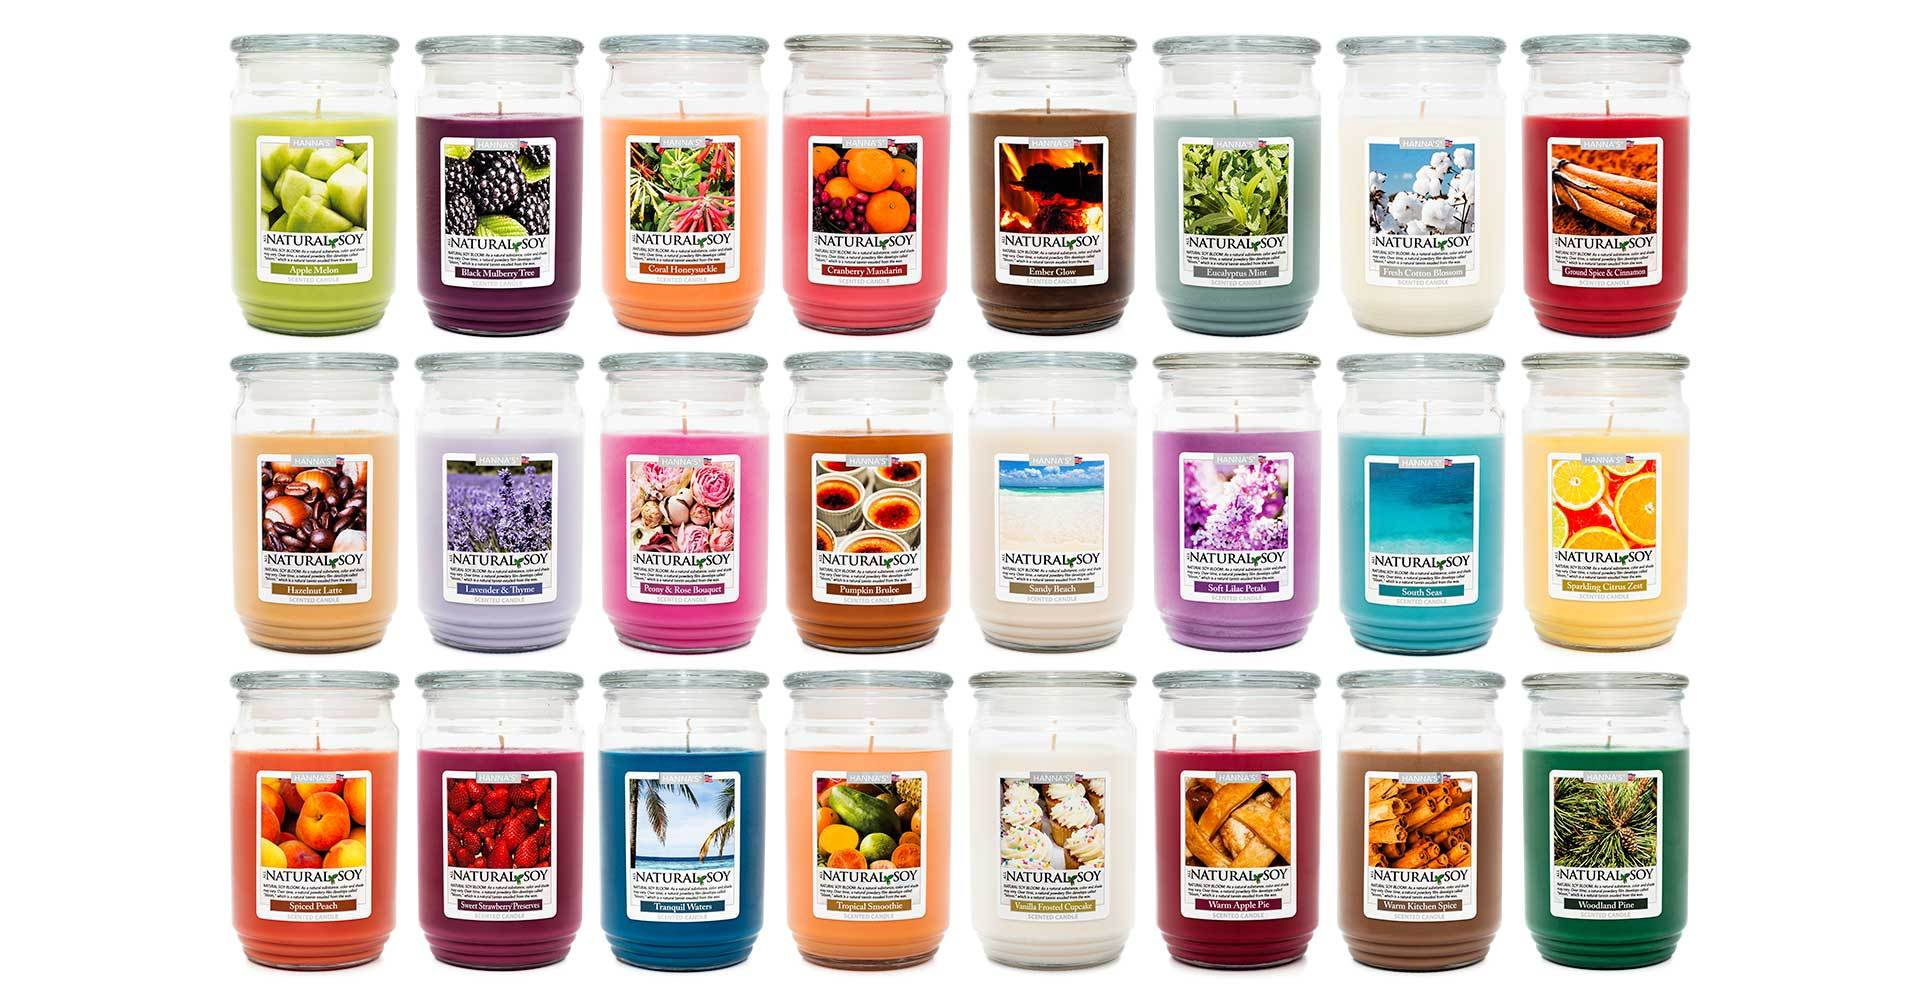 Natural Soy South Seas Scented Soy Candle 100% Soy Candles Candlemart.com $ 12.99